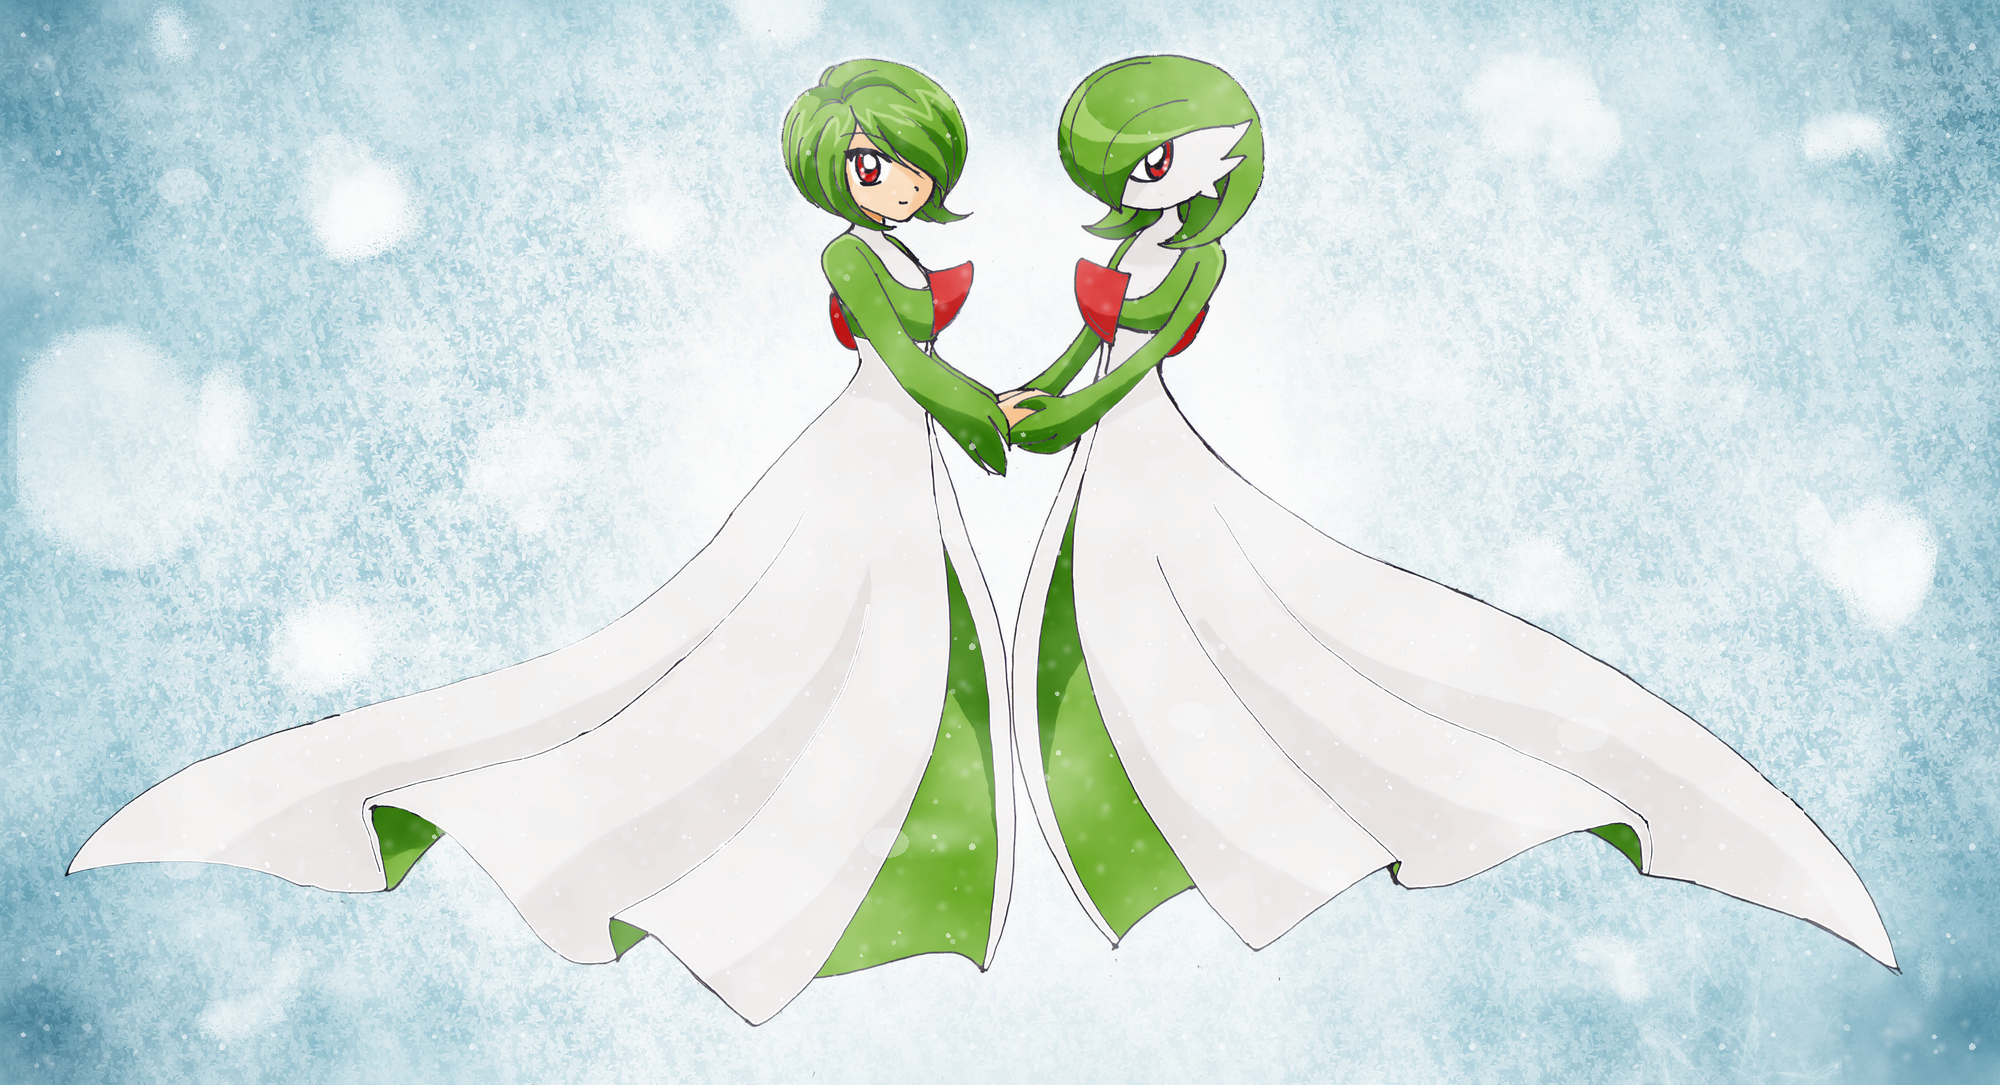 Gardevoir joy studio design gallery best design - Gardevoir By Chikorita85 Gardevoir By Chikorita85